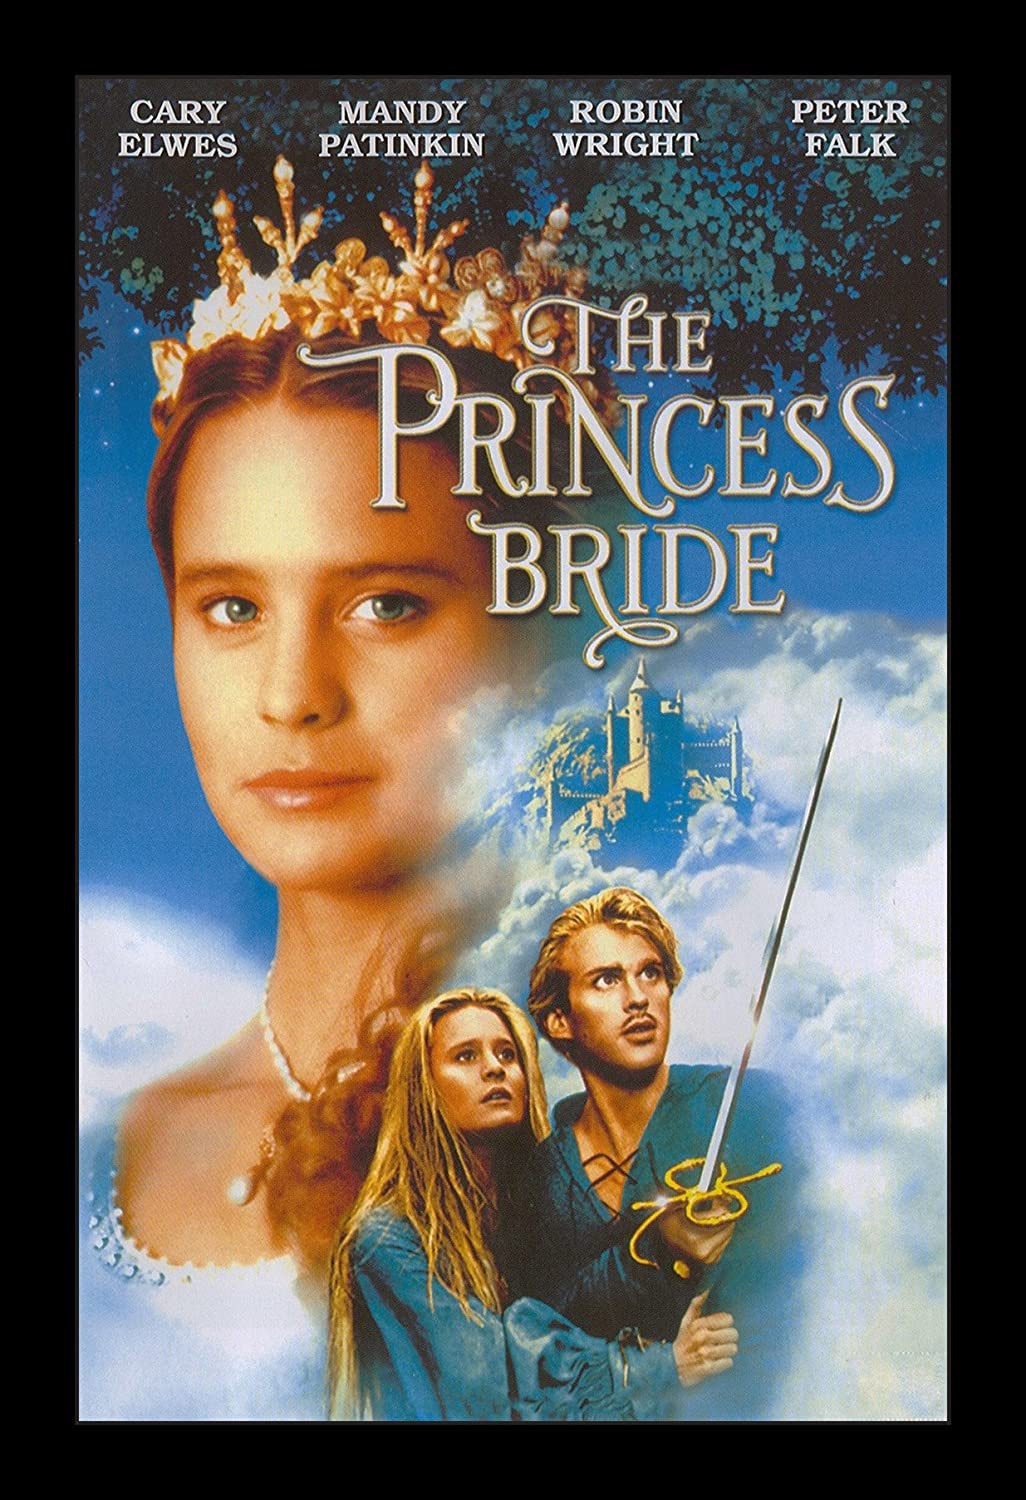 Please Don't Remake This: The Princess Bride